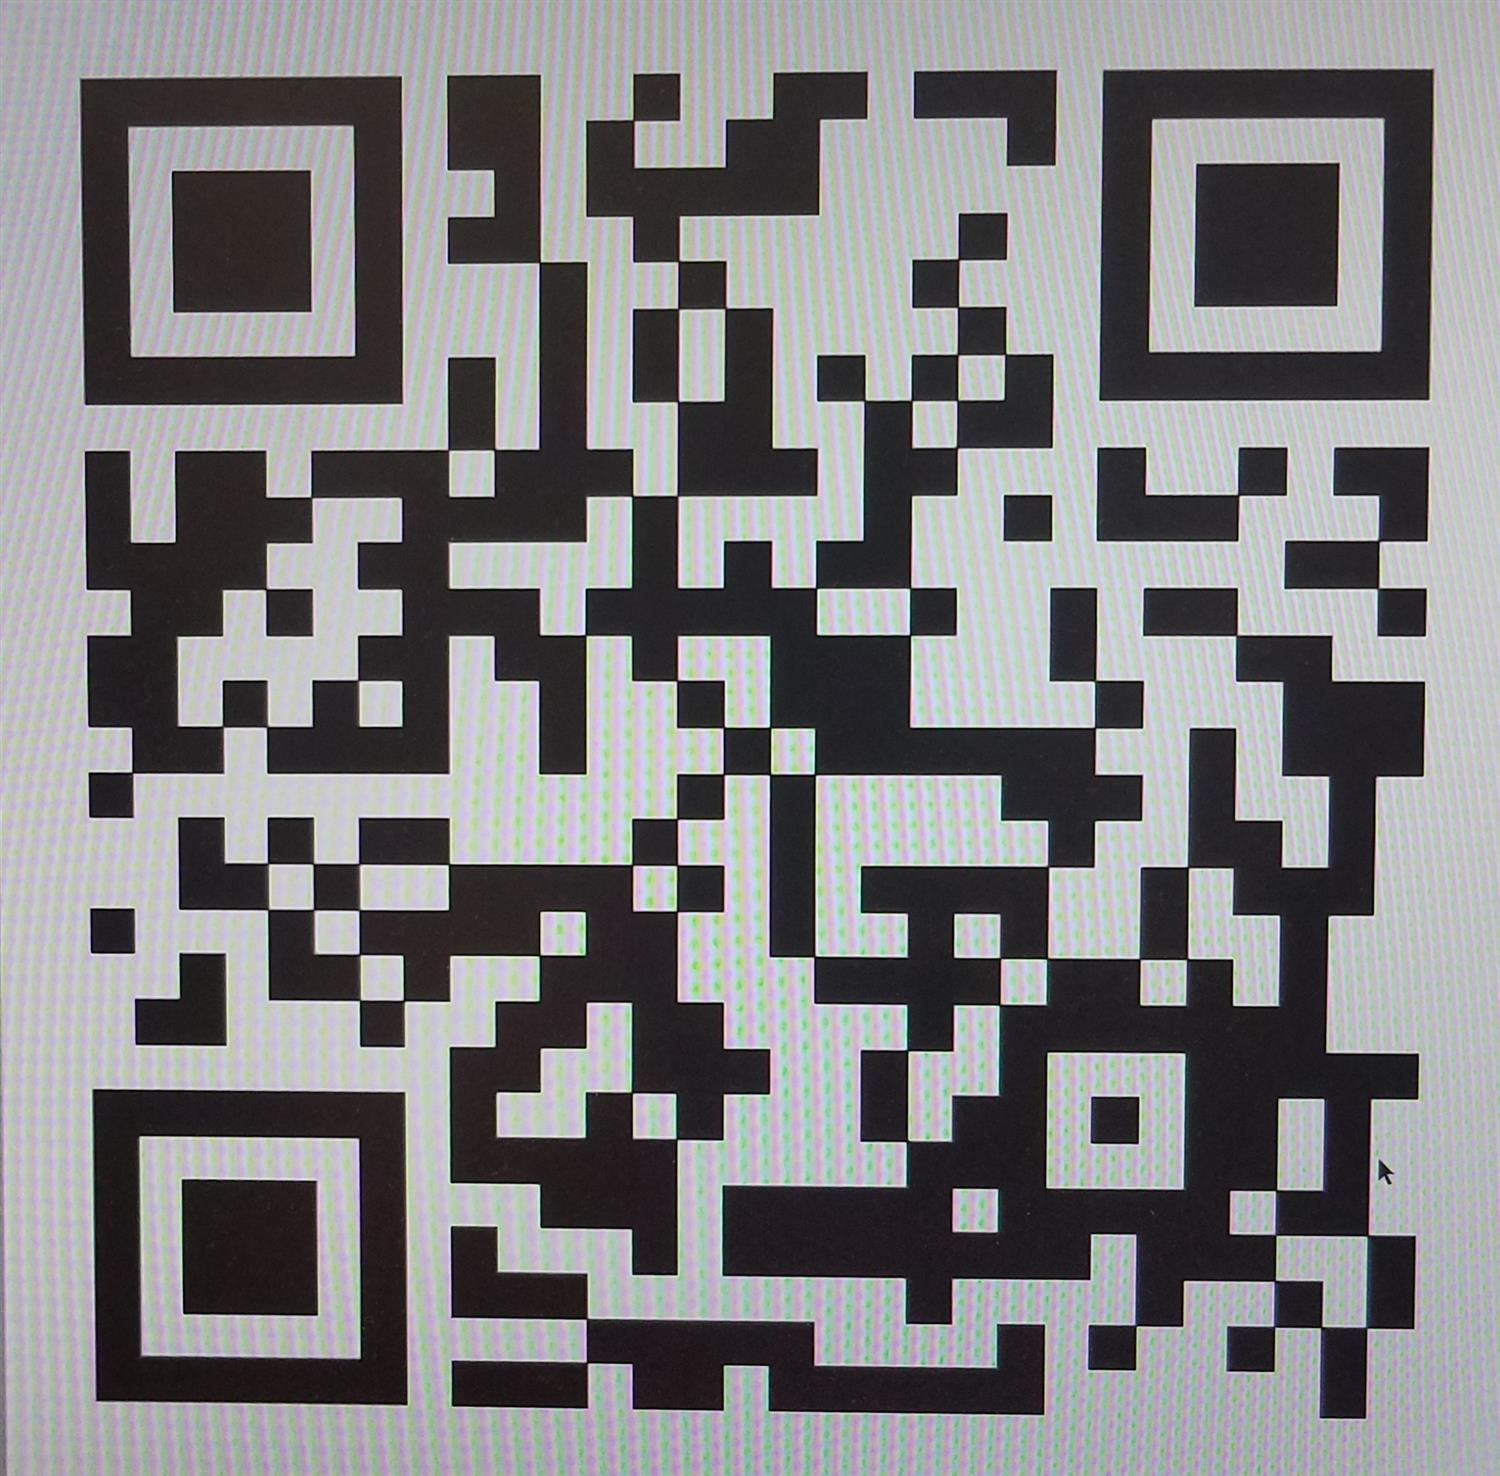 Celebrate MB Staff - Click here for the link or scan the qr code